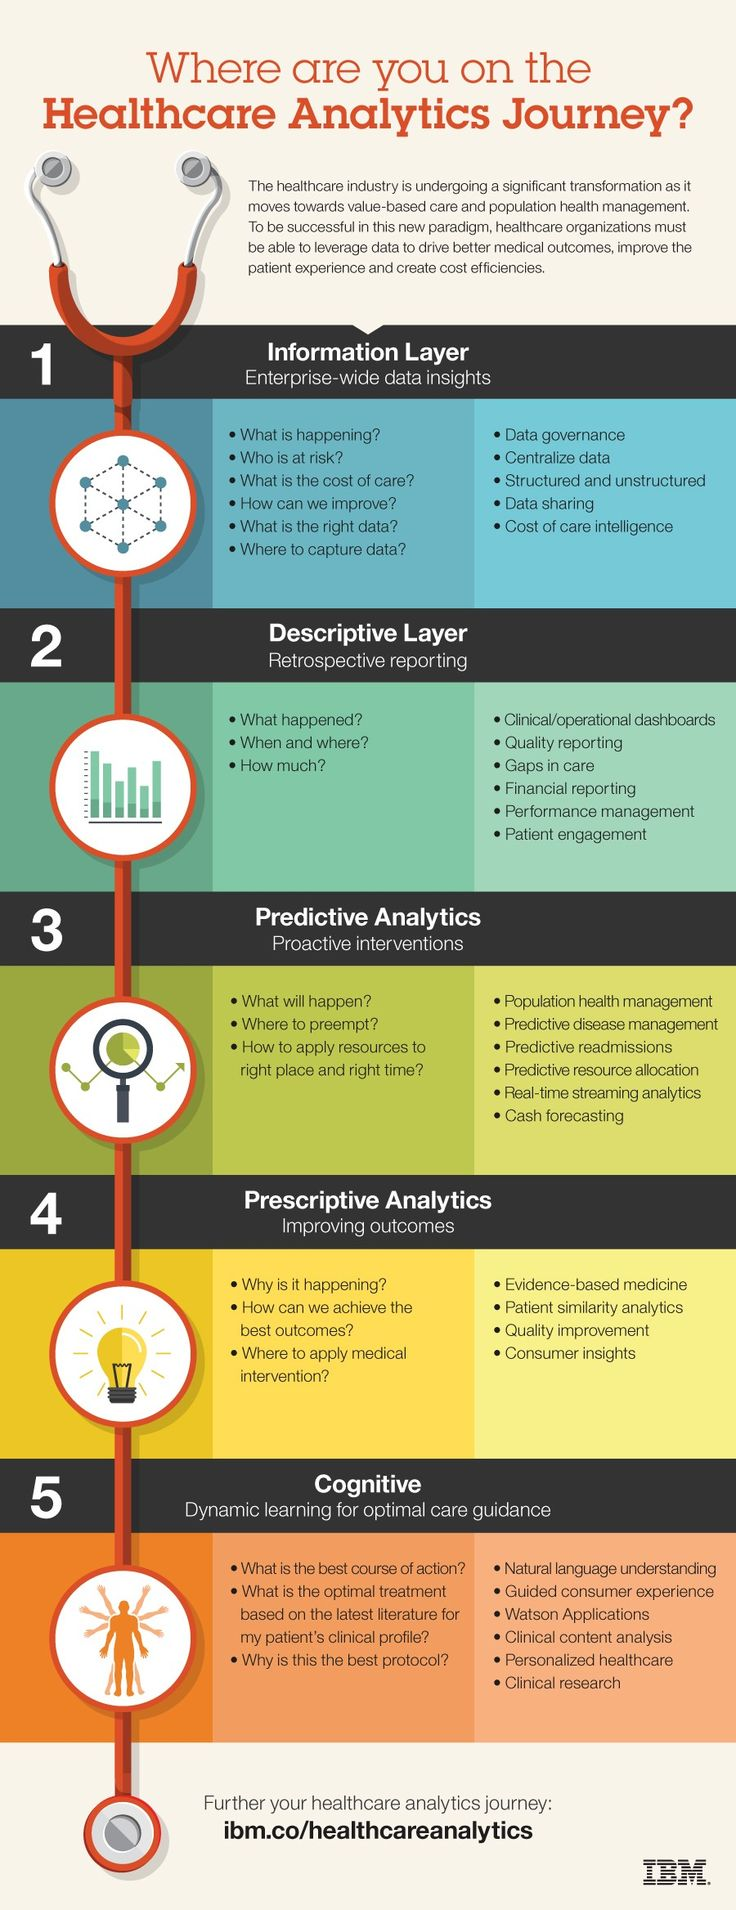 Enterprise analytics serving big data projects for healthcare - From Retrospective To Predictive To Prescriptive Analytics Healthcare Organizations Are Embarking On Analytics Journeys To Enhance Medical Outcomes